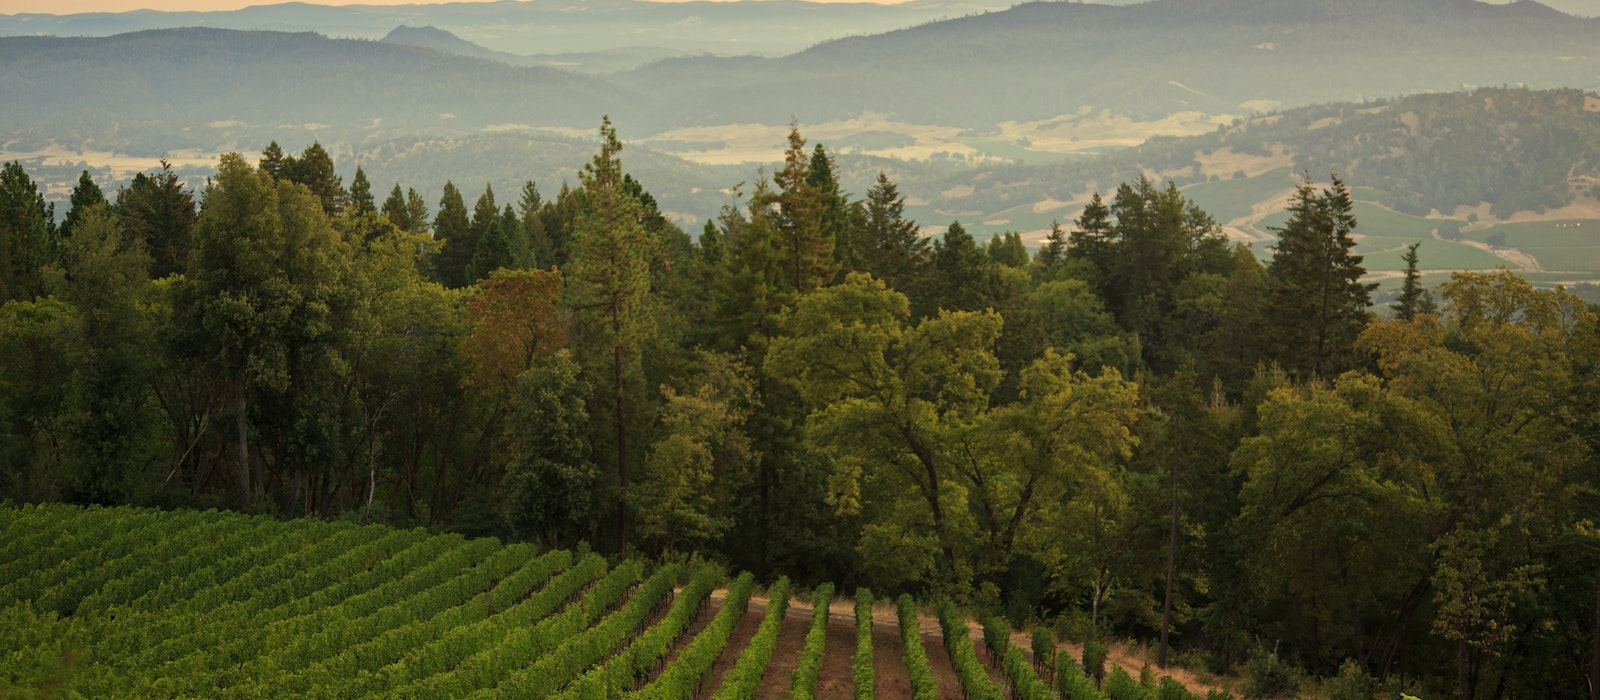 Chef Chris Cosentino recommends a visit to the Clif Family Winery on a trip to Napa Valley.